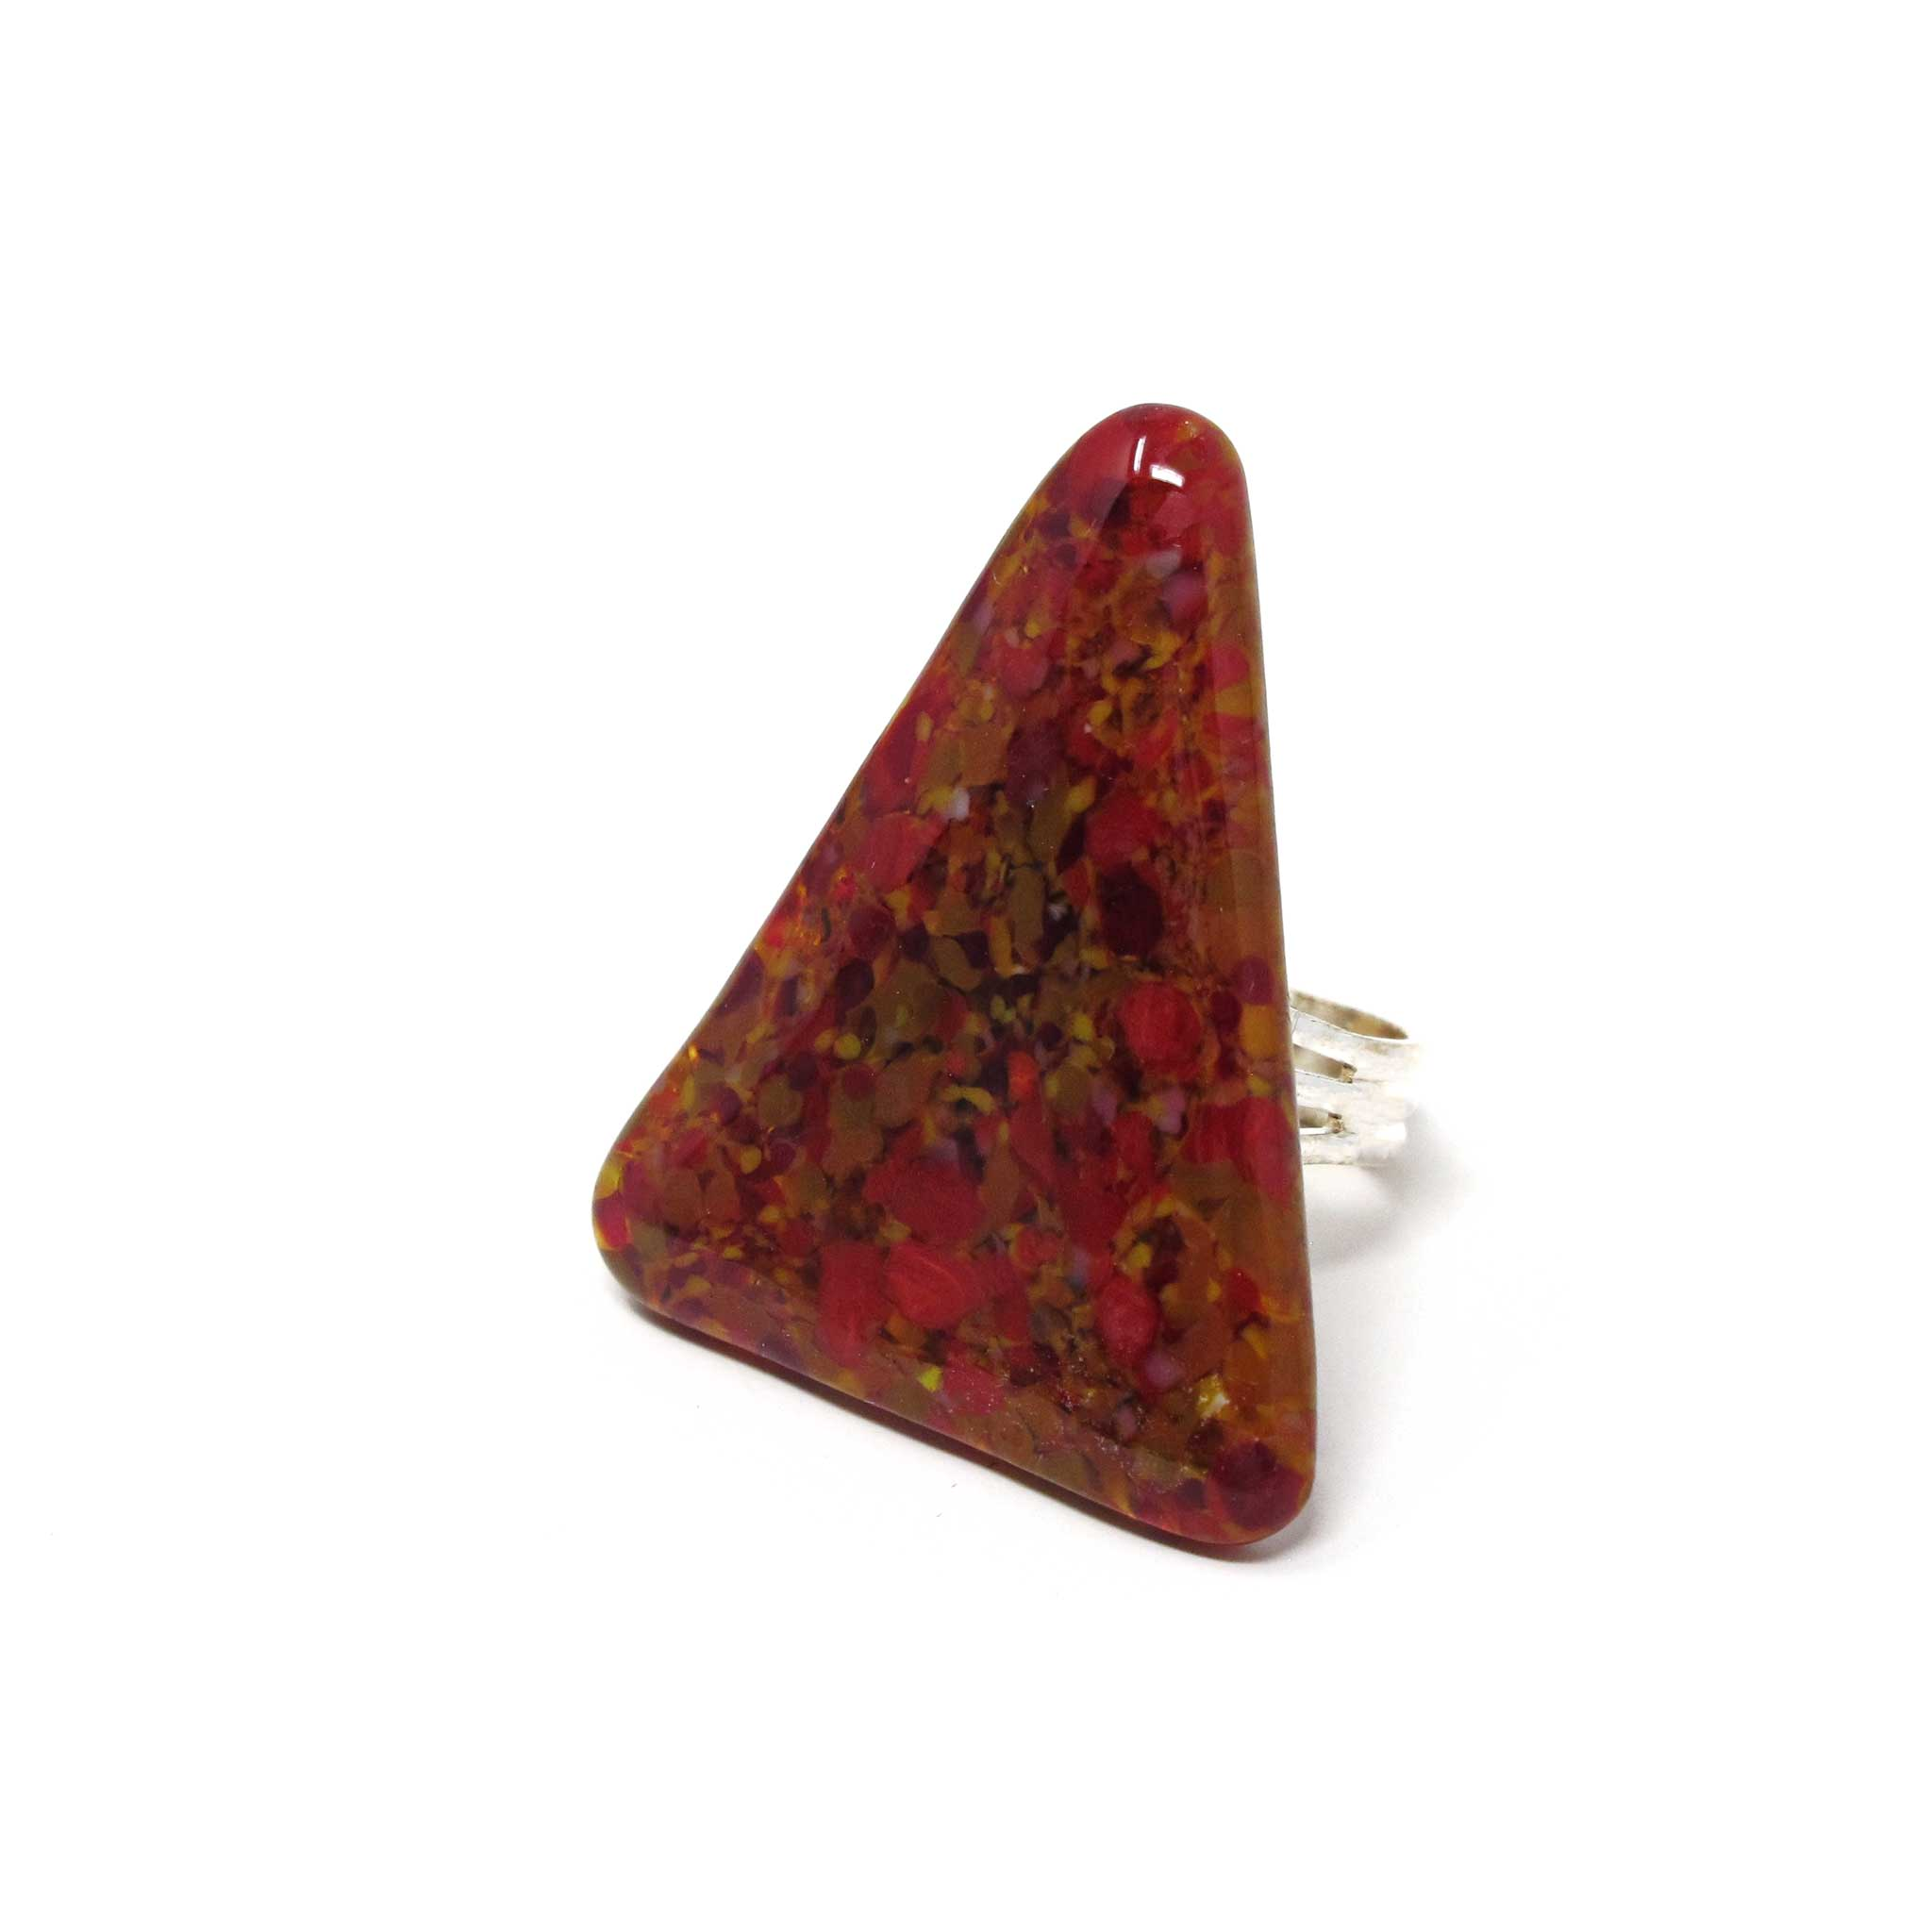 KISMET stone effect statement ring in red jasper